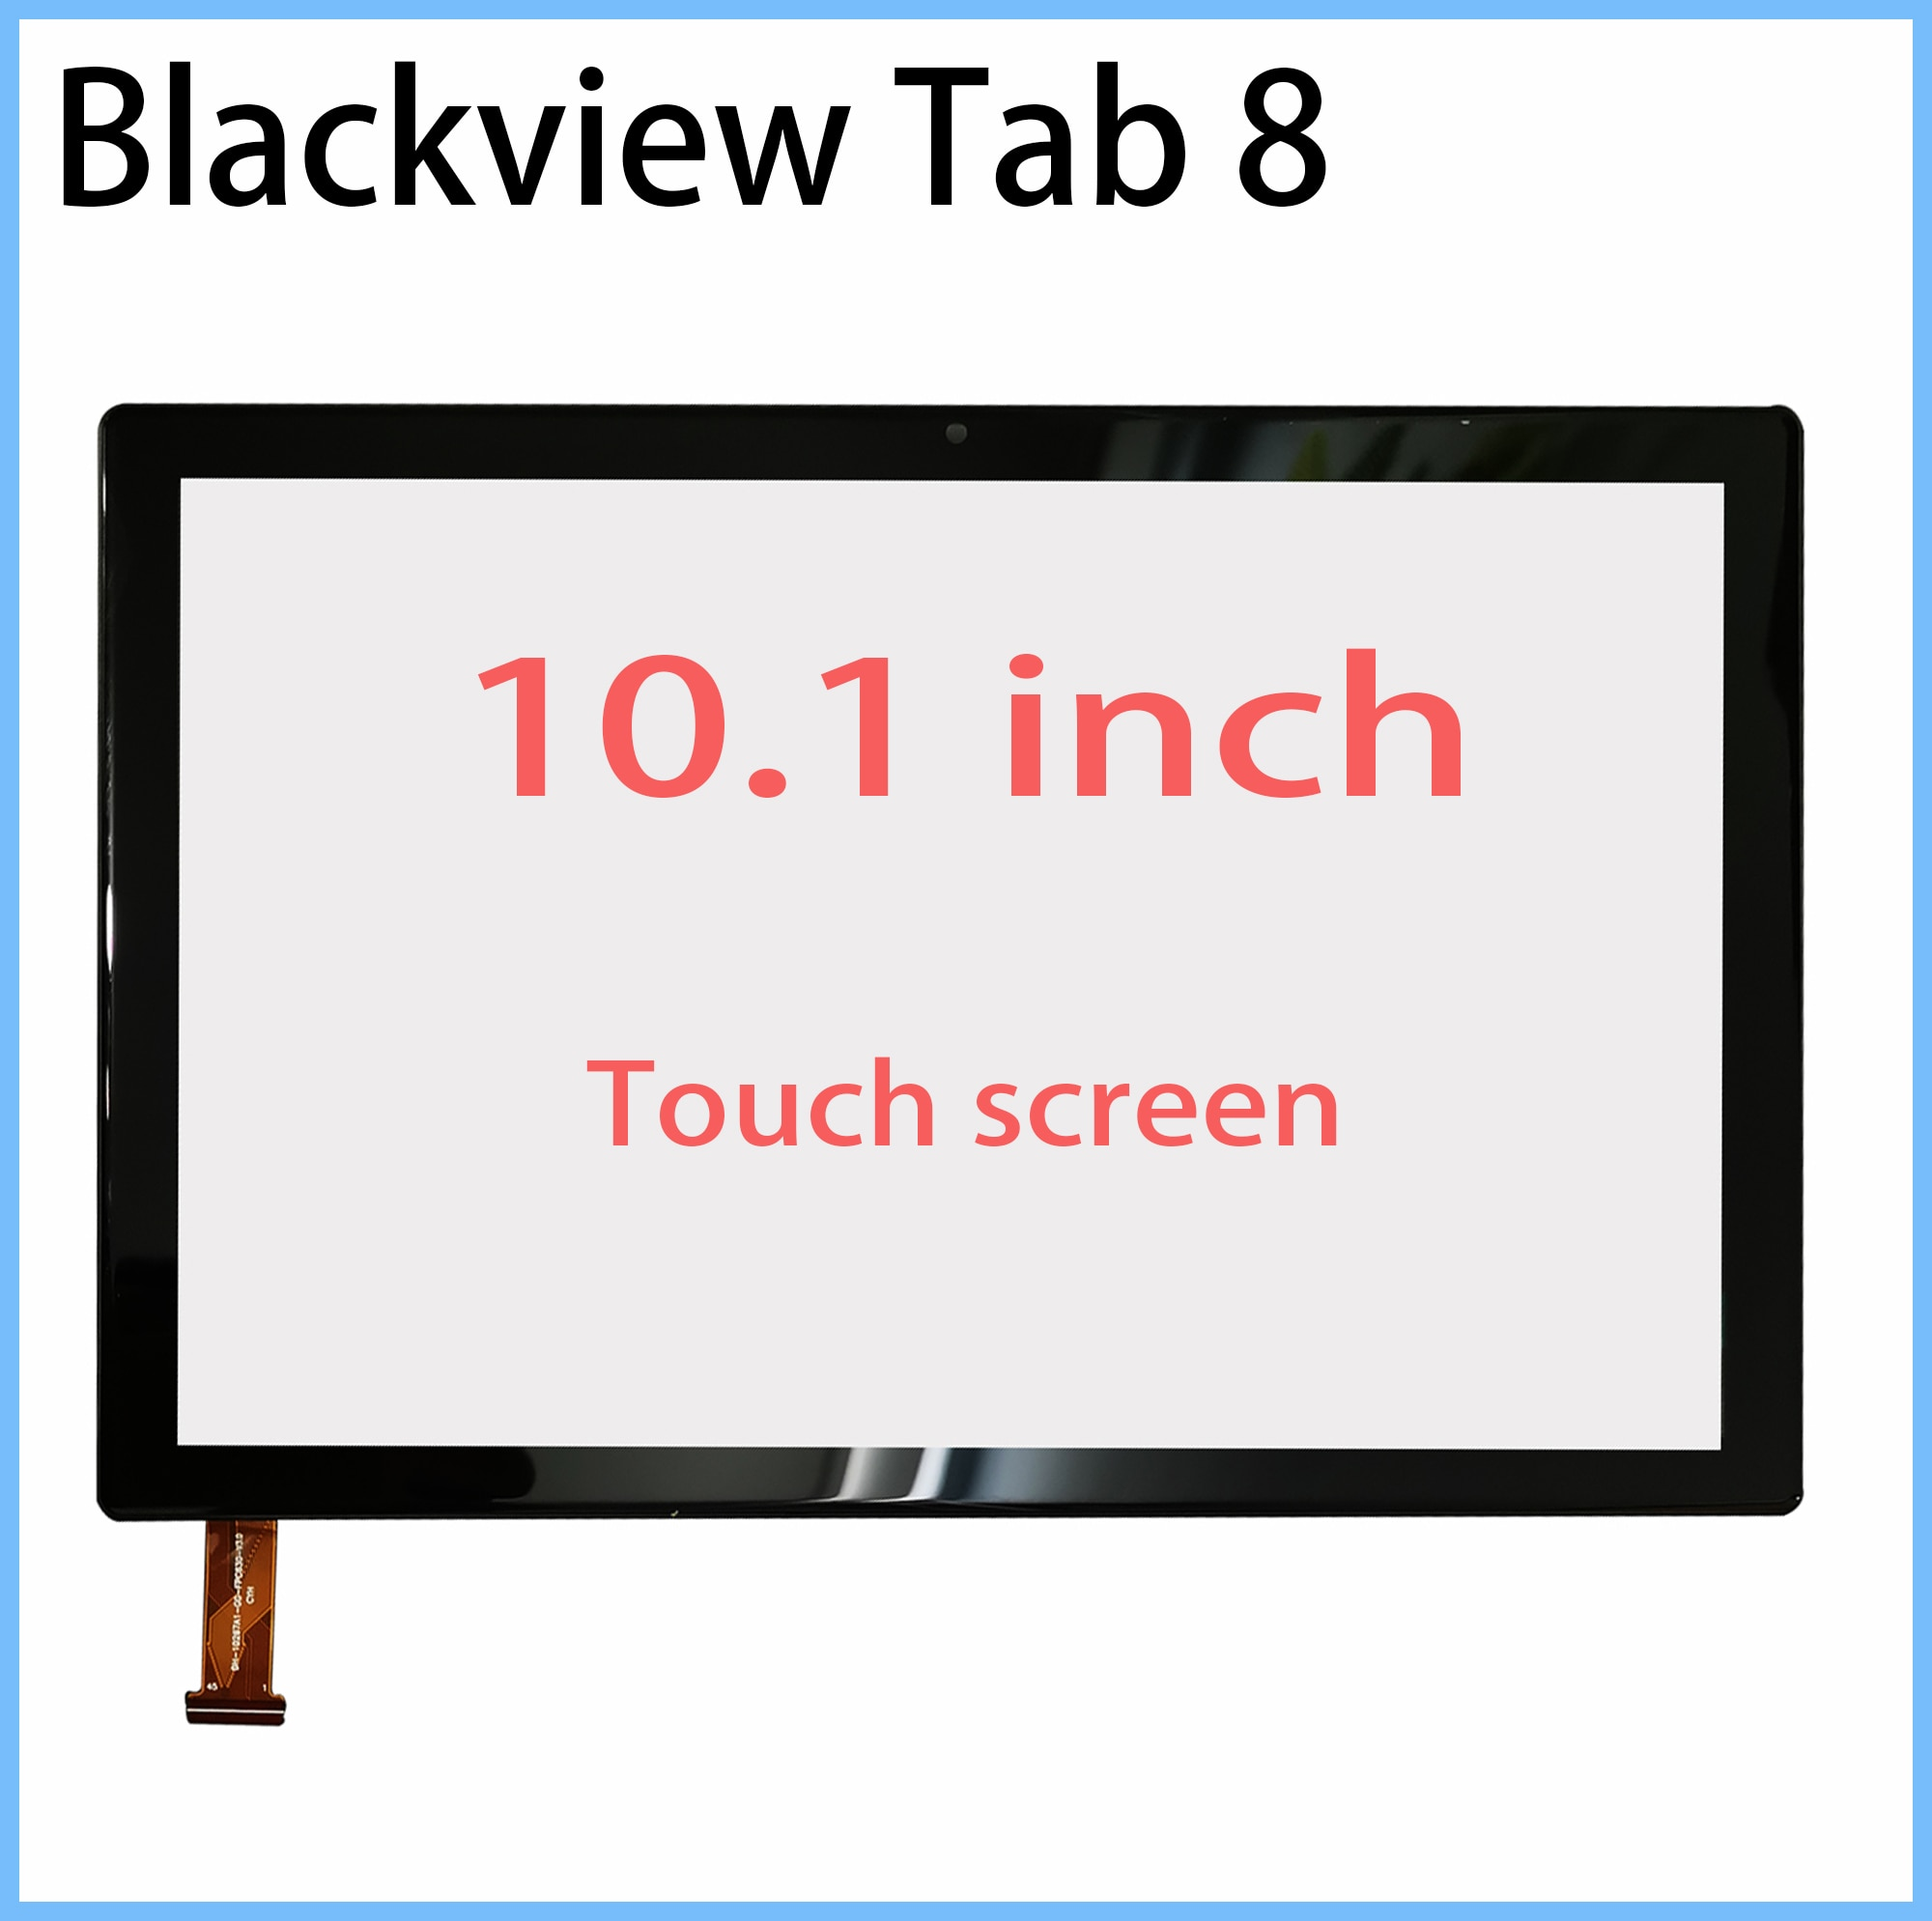 New LCD Display Touch screen For Blackview Tab 8 / 8E 10.1 inch Tablet touch screen touch panel digitizer glass repair replace